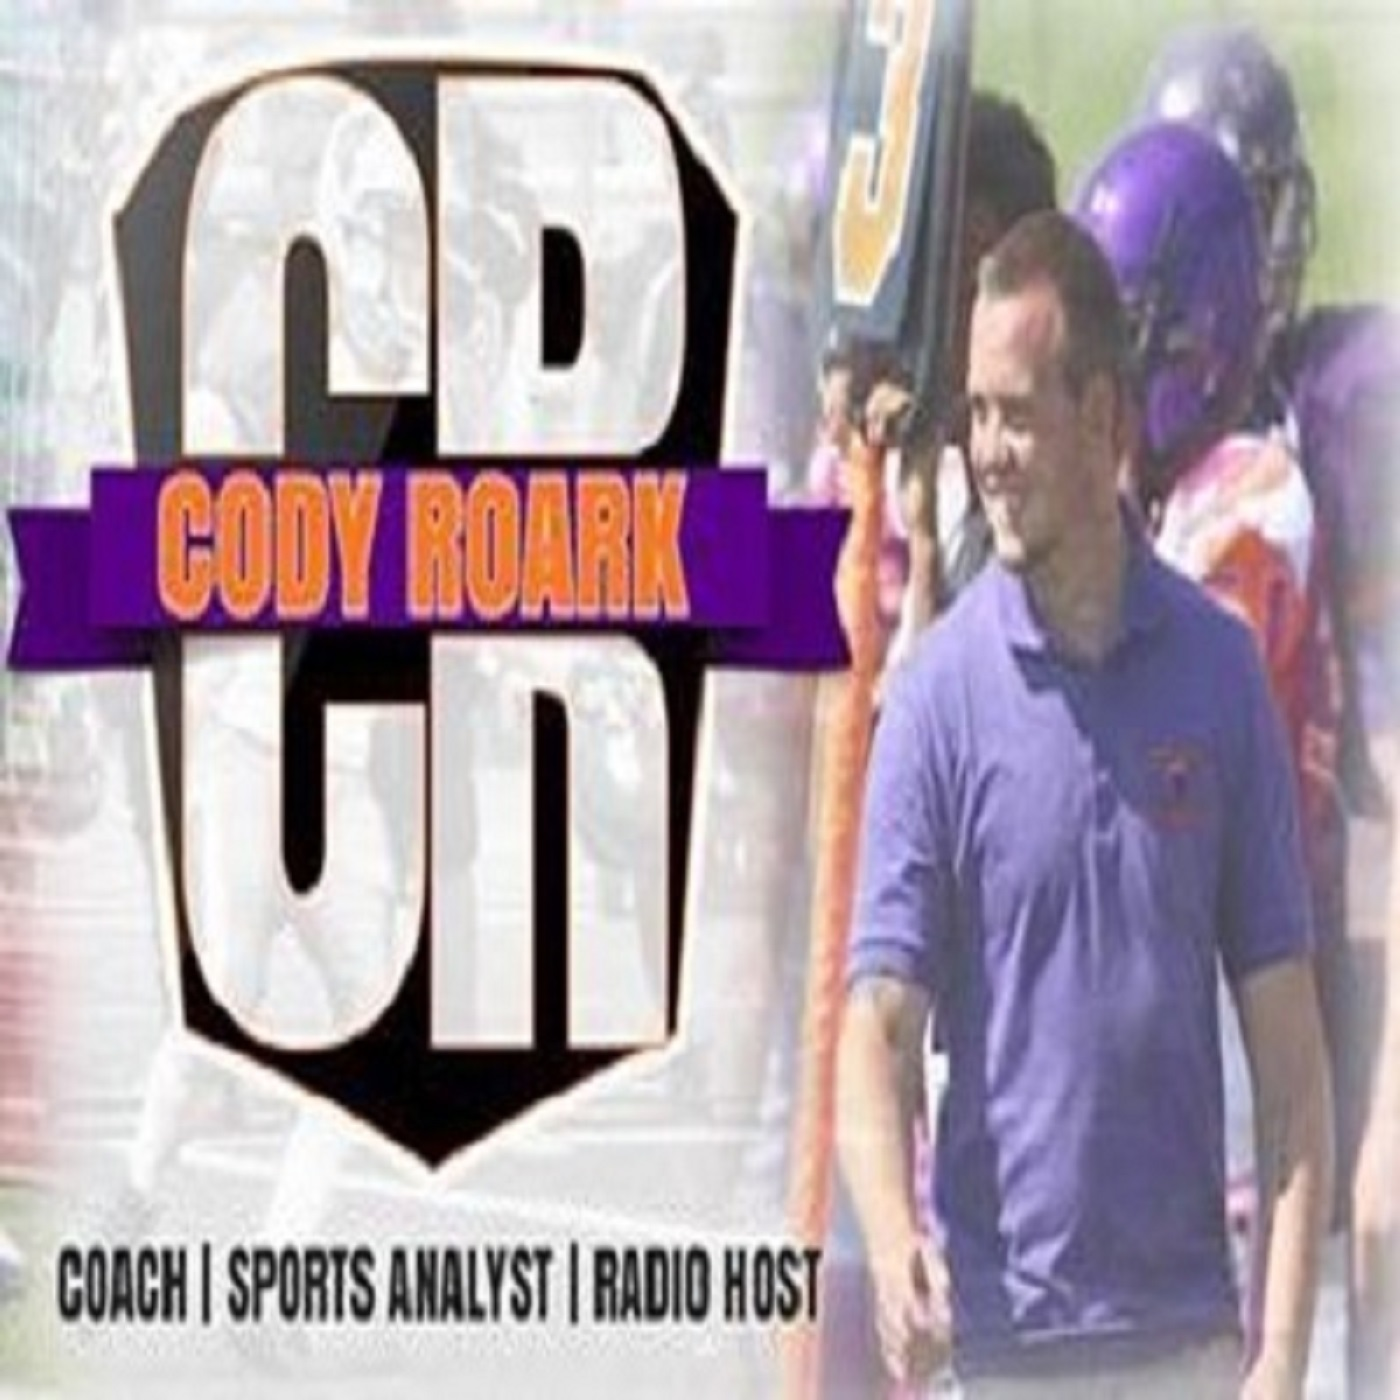 Coaches Corner Podcast w/ Cody Roark